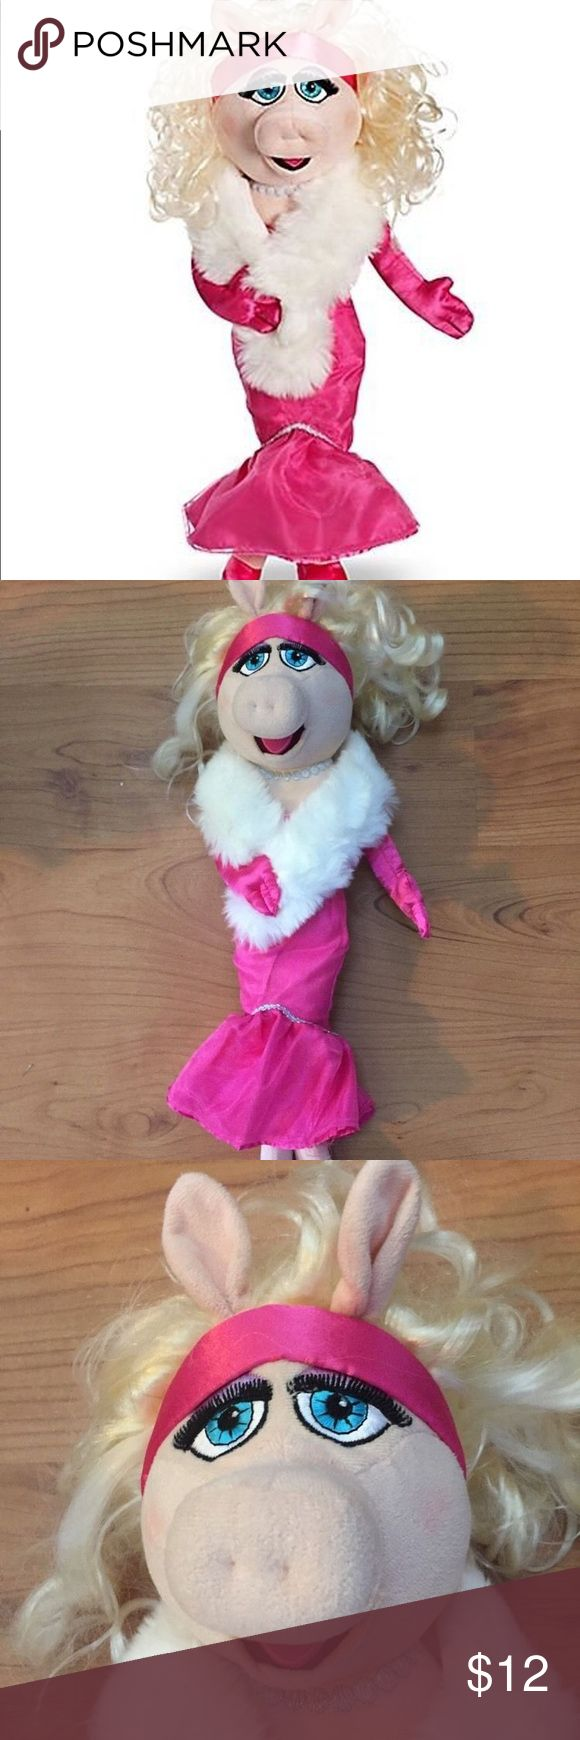 """The muppets 19 miss piggy plush doll figure Disney Miss piggy plush toy or doll - dressed up like Marilyn Monroe she is 19"""" tall and needs a new home. From the Disney store- in good used condition- owned by an adult hair is a little messy is the oh flaw - save money on items and shipping by bundling with me Disney Accessories"""